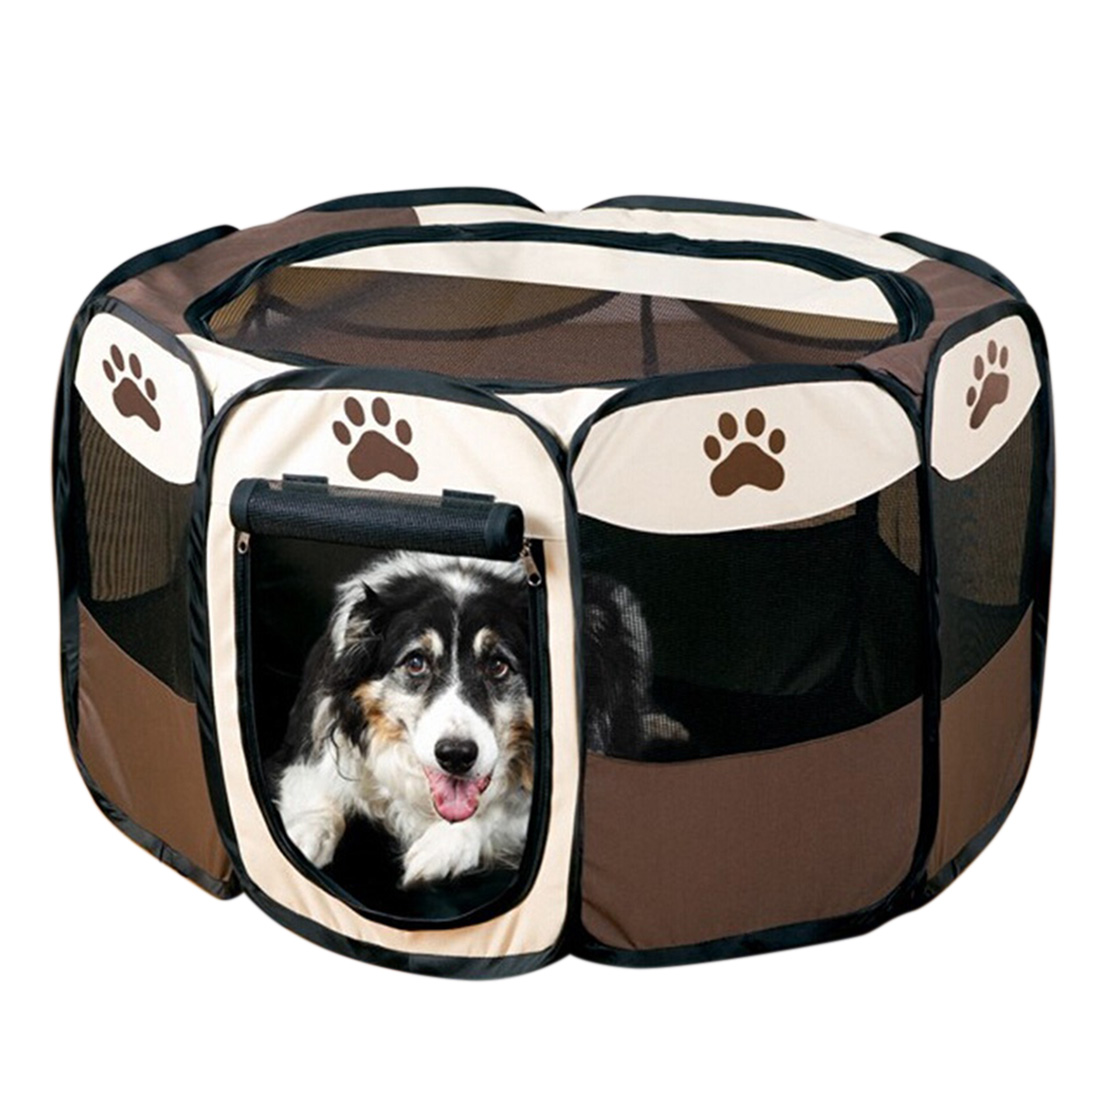 Portable Pet Carrier Dog Playpen Pet Fence Folding Pet Tent Dog House Cage Cat Puppy Playpen Kennel Playpen for Dogs(China)